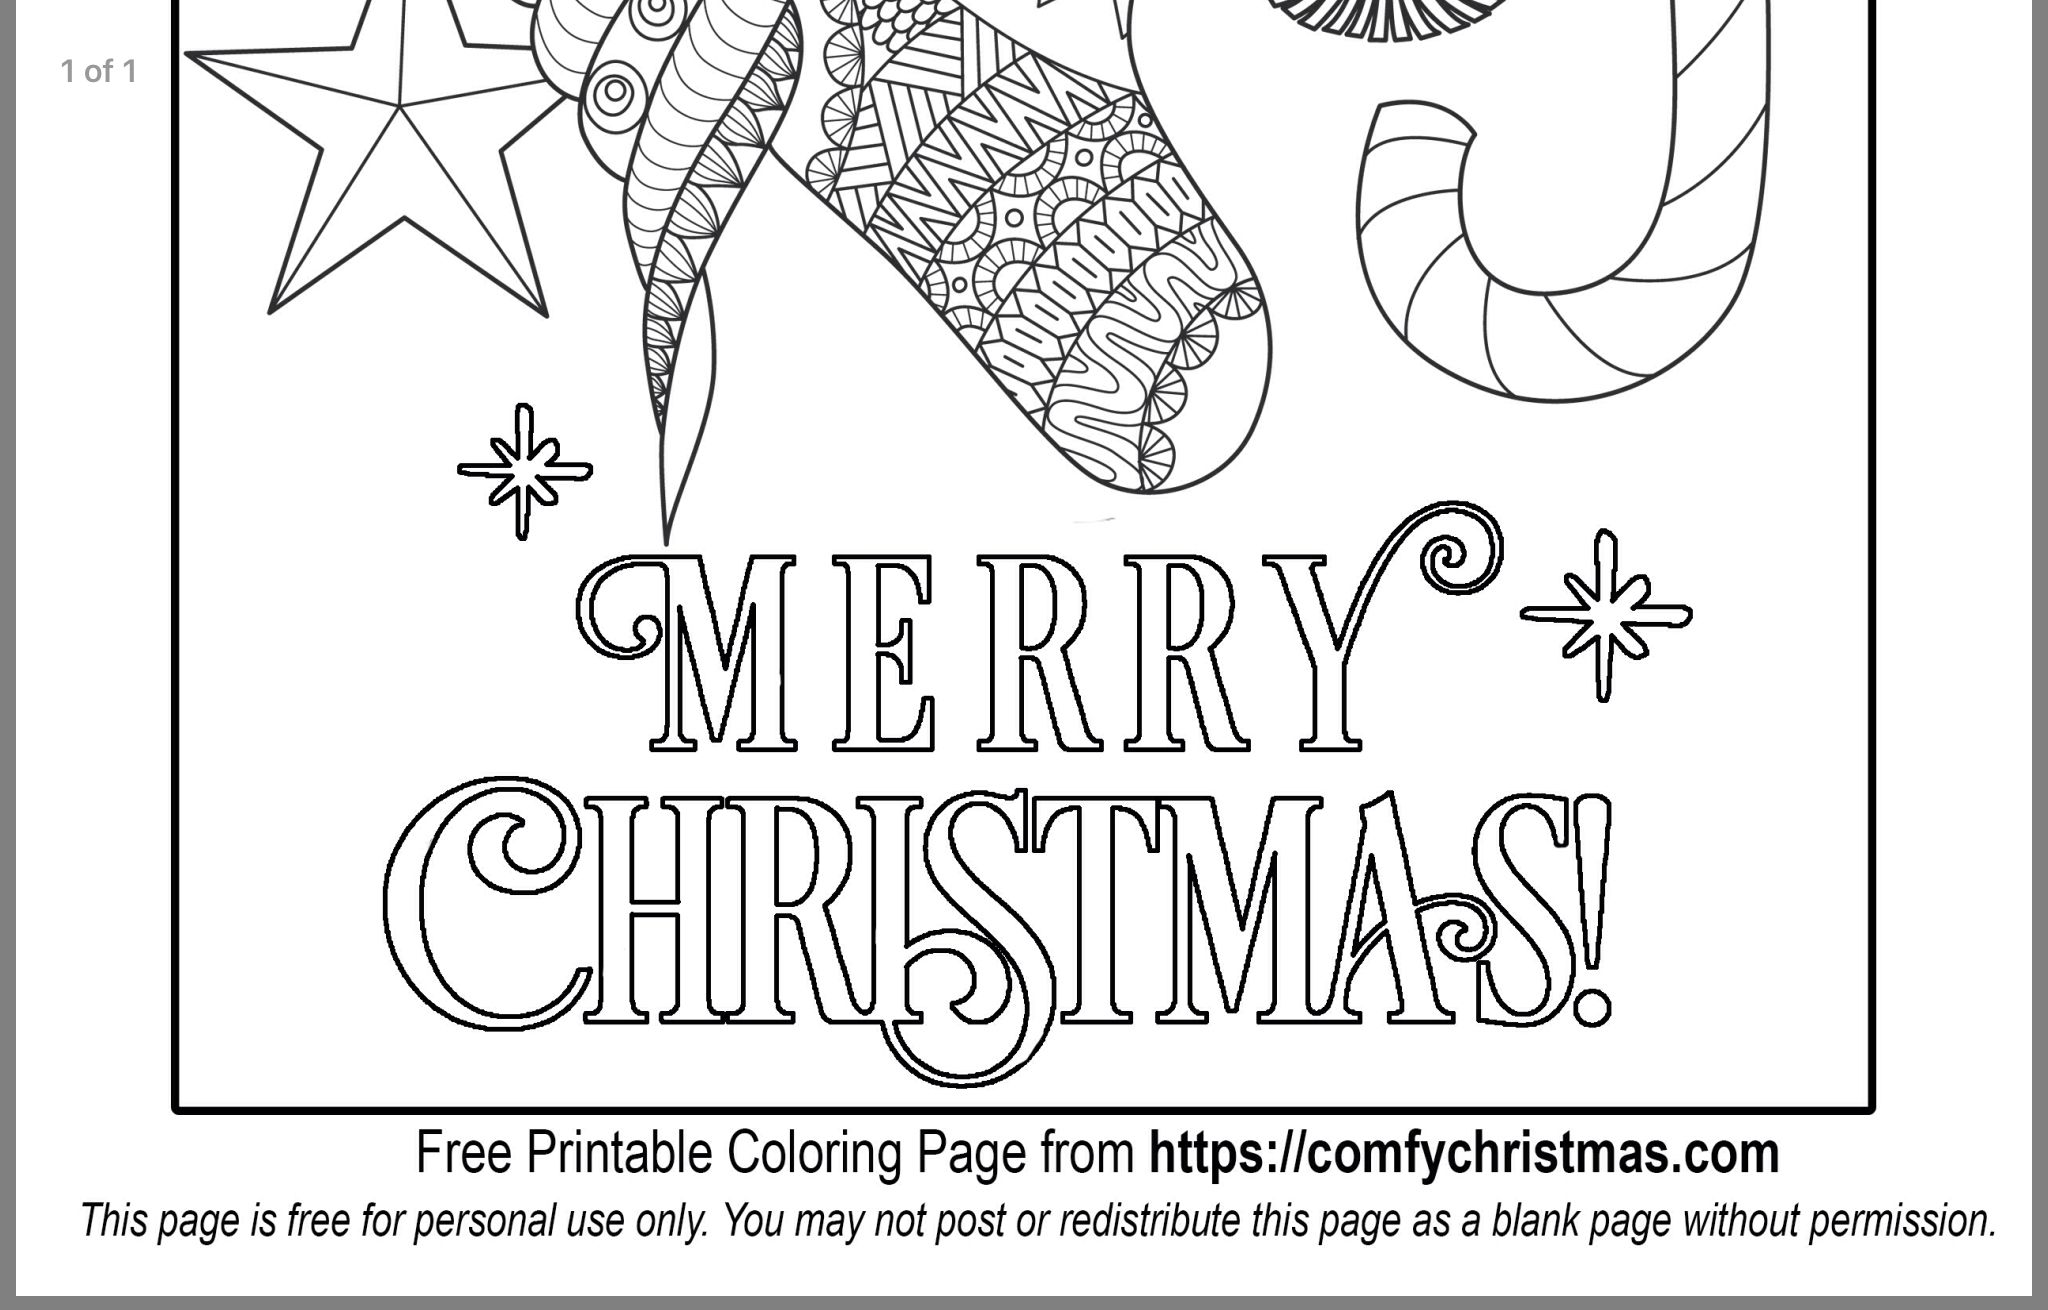 Pin By Pat Budge On Christmas Coloring Pages For Adults Free Printable Coloring Pages Coloring Pages Christmas Coloring Pages